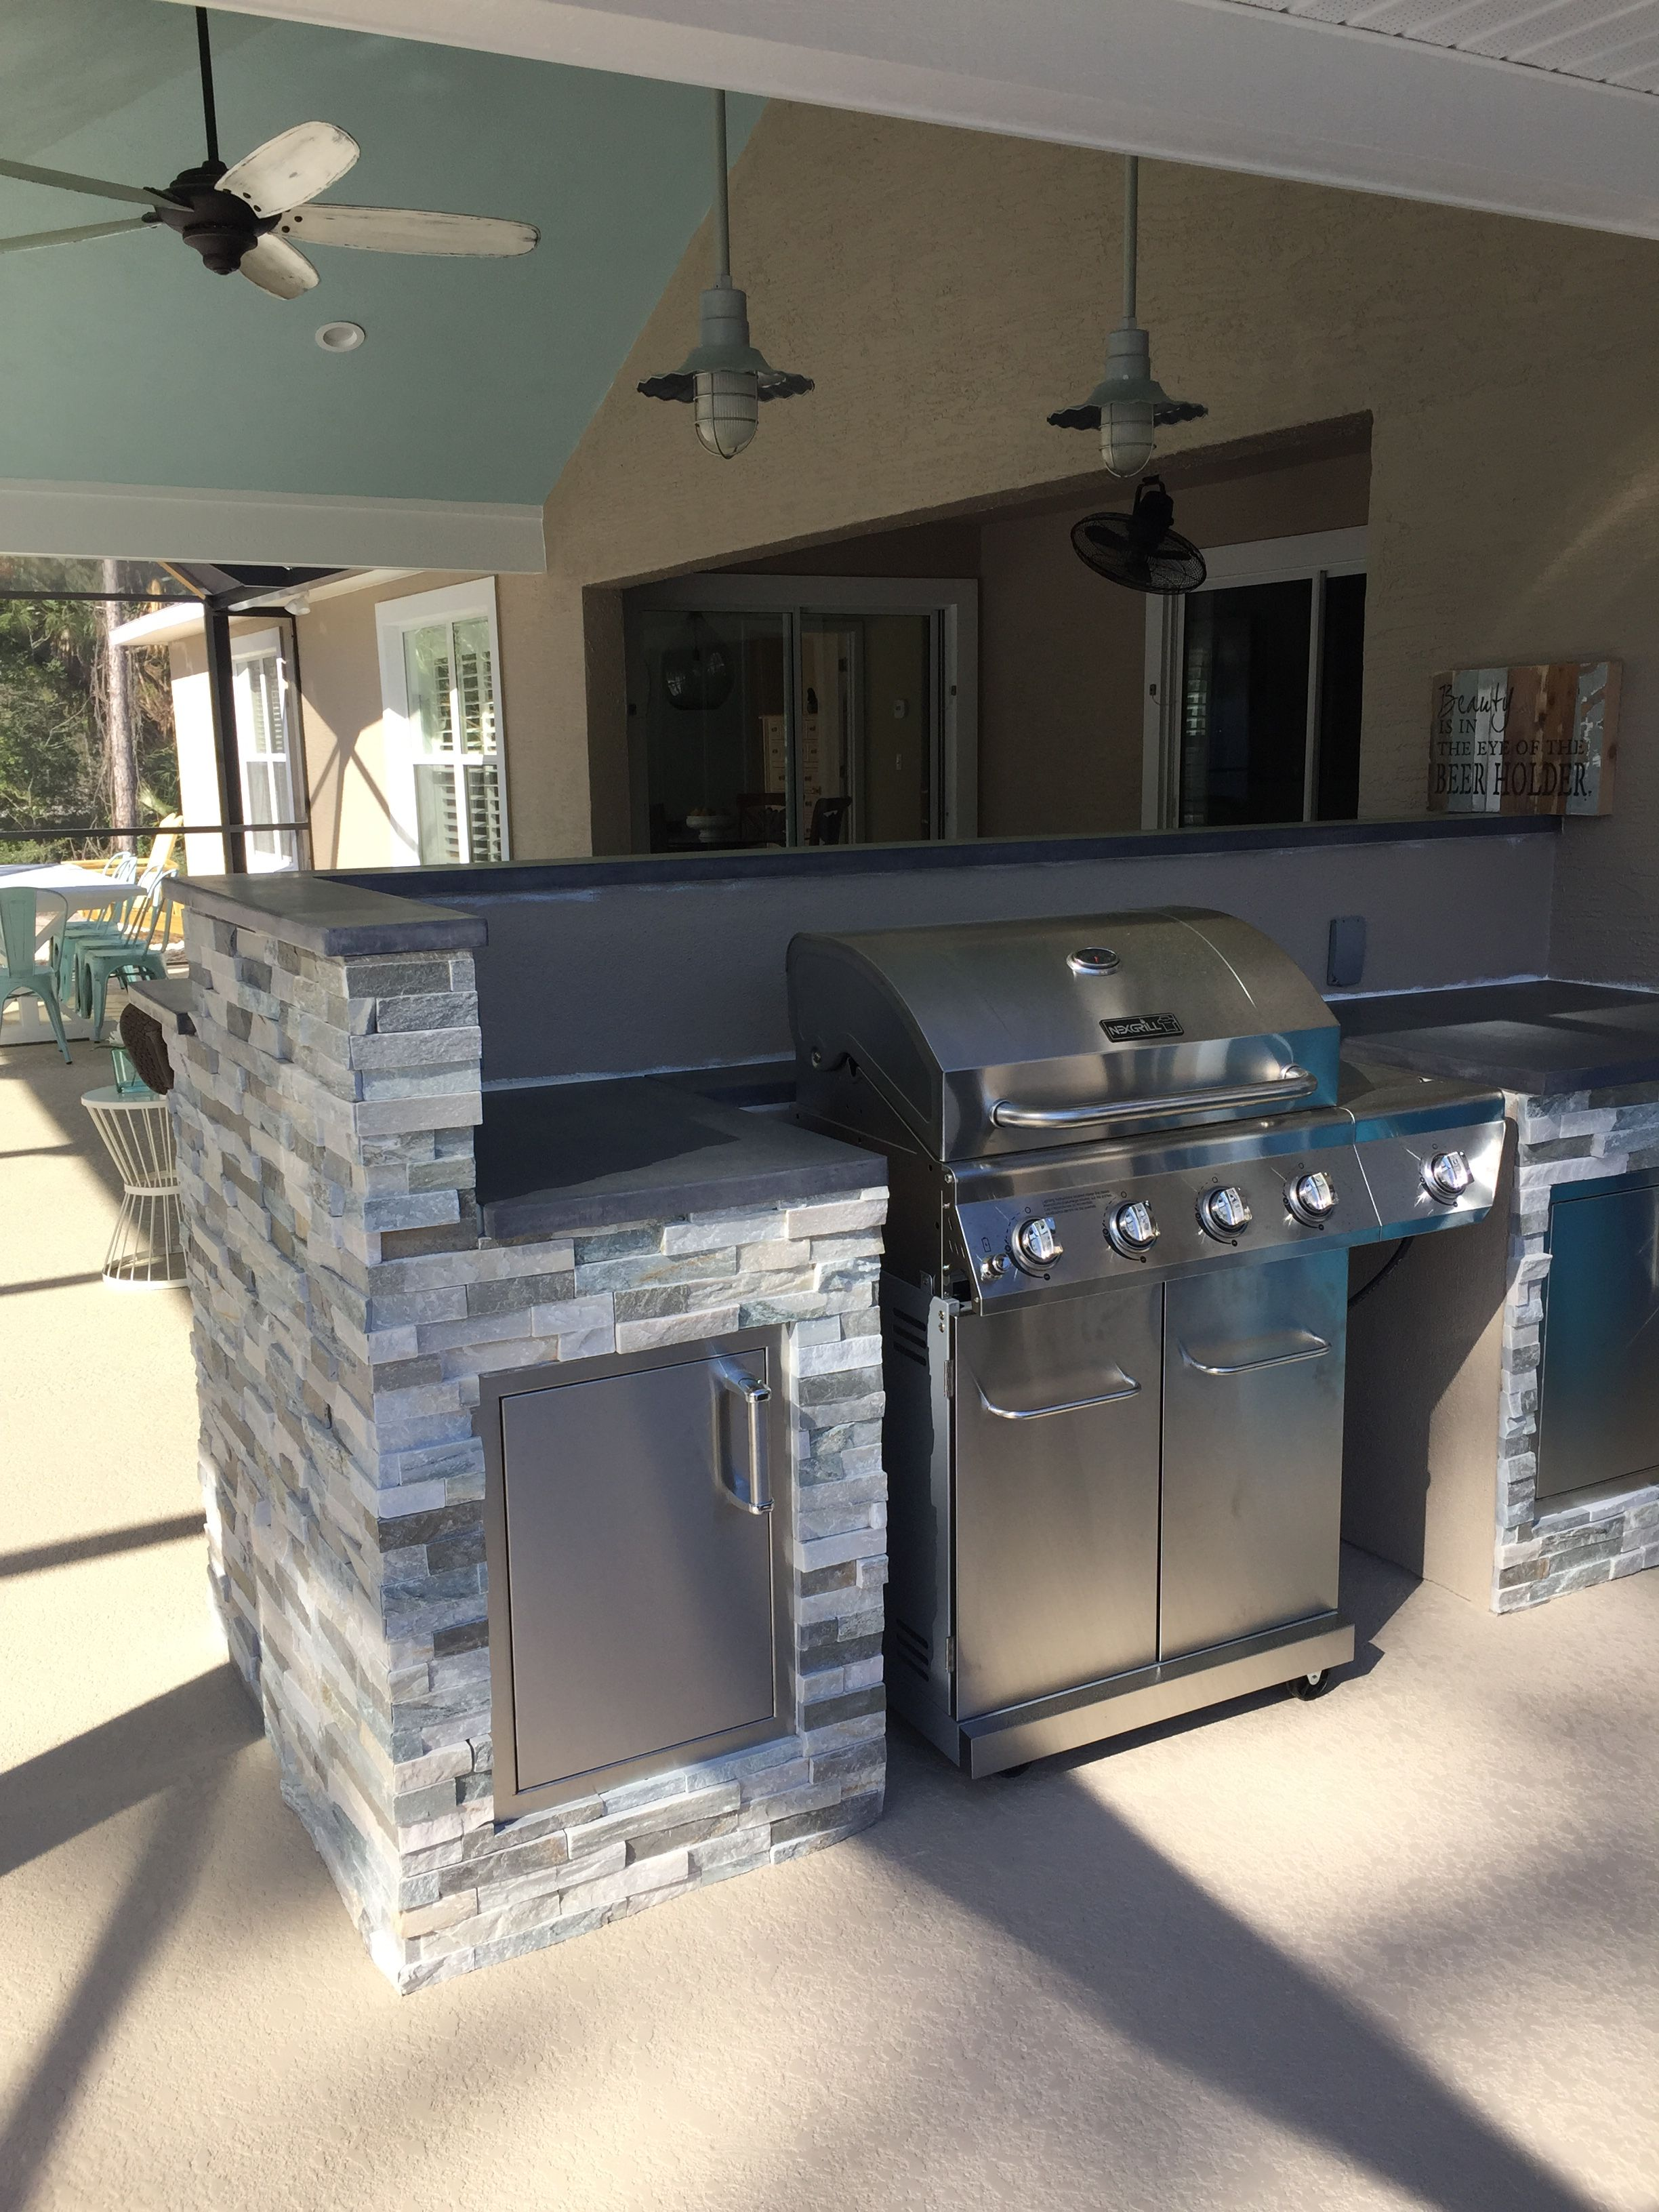 Diy Outdoor Kitchen Bar On The Back Side Outdoor Kitchen Design Layout Outdoor Kitchen Design Outdoor Kitchen Countertops